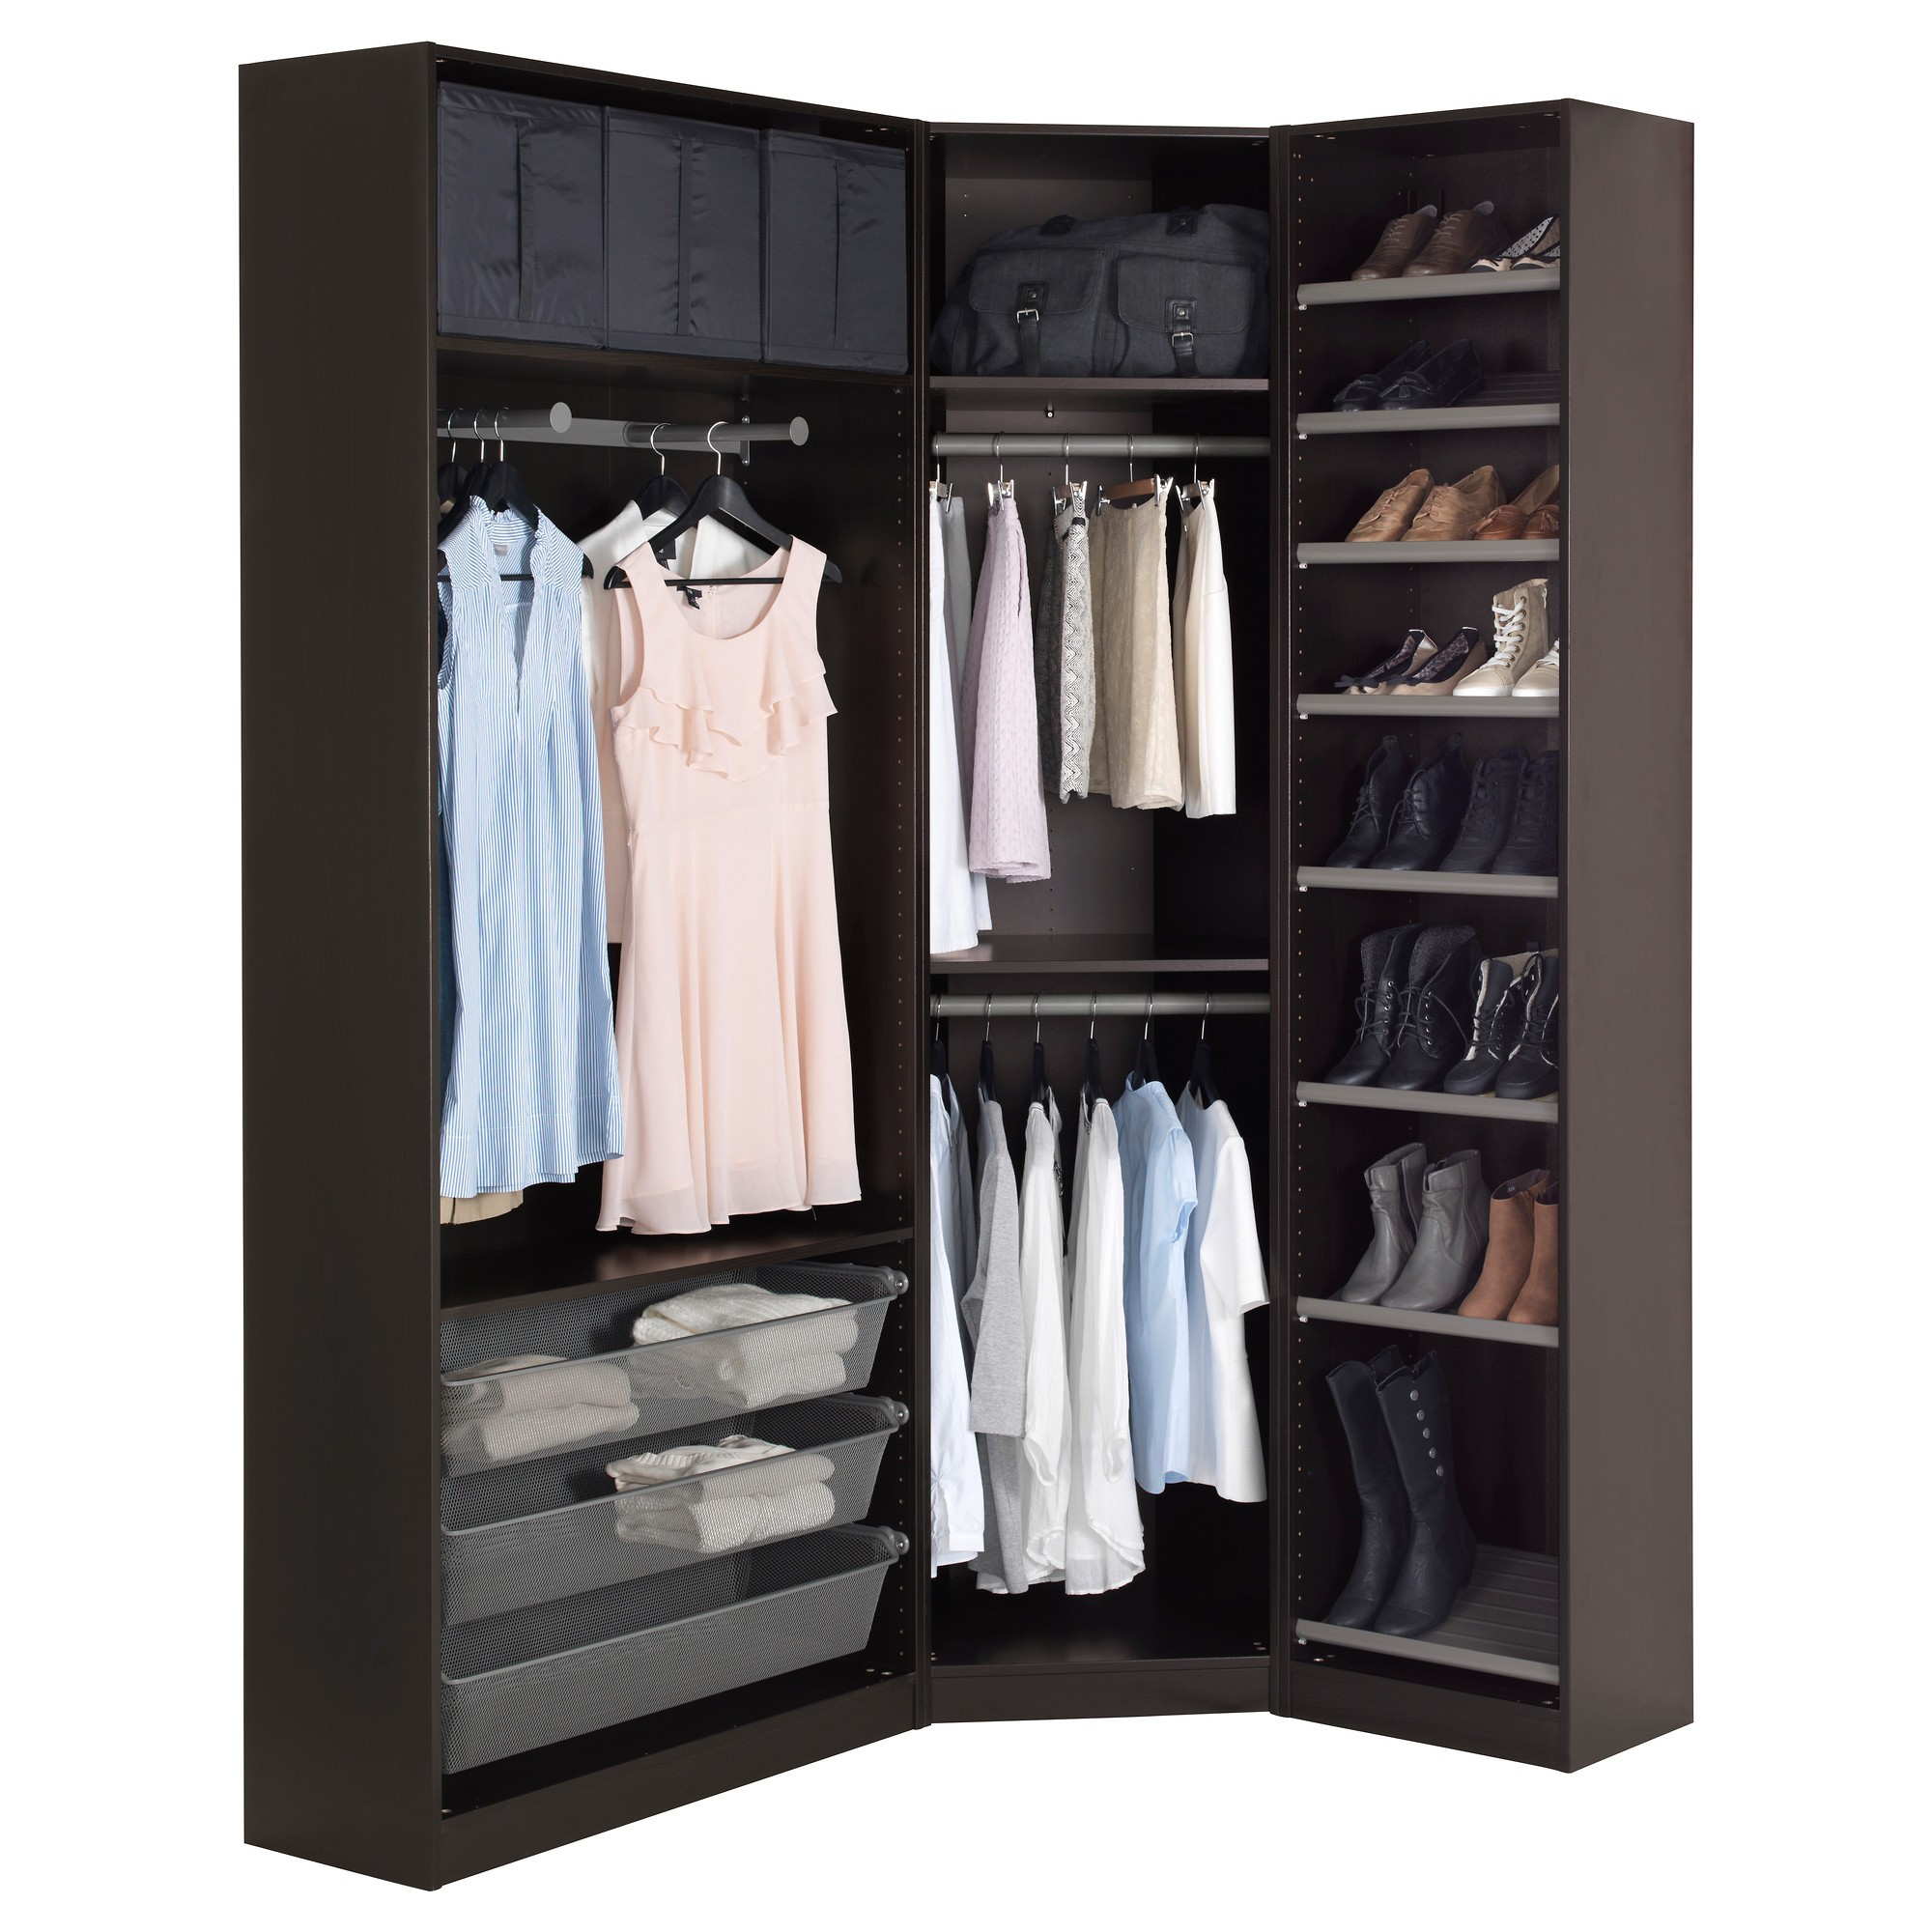 Dressing d angle ikea perfect armoire vetement ikea for Armoire dressing but